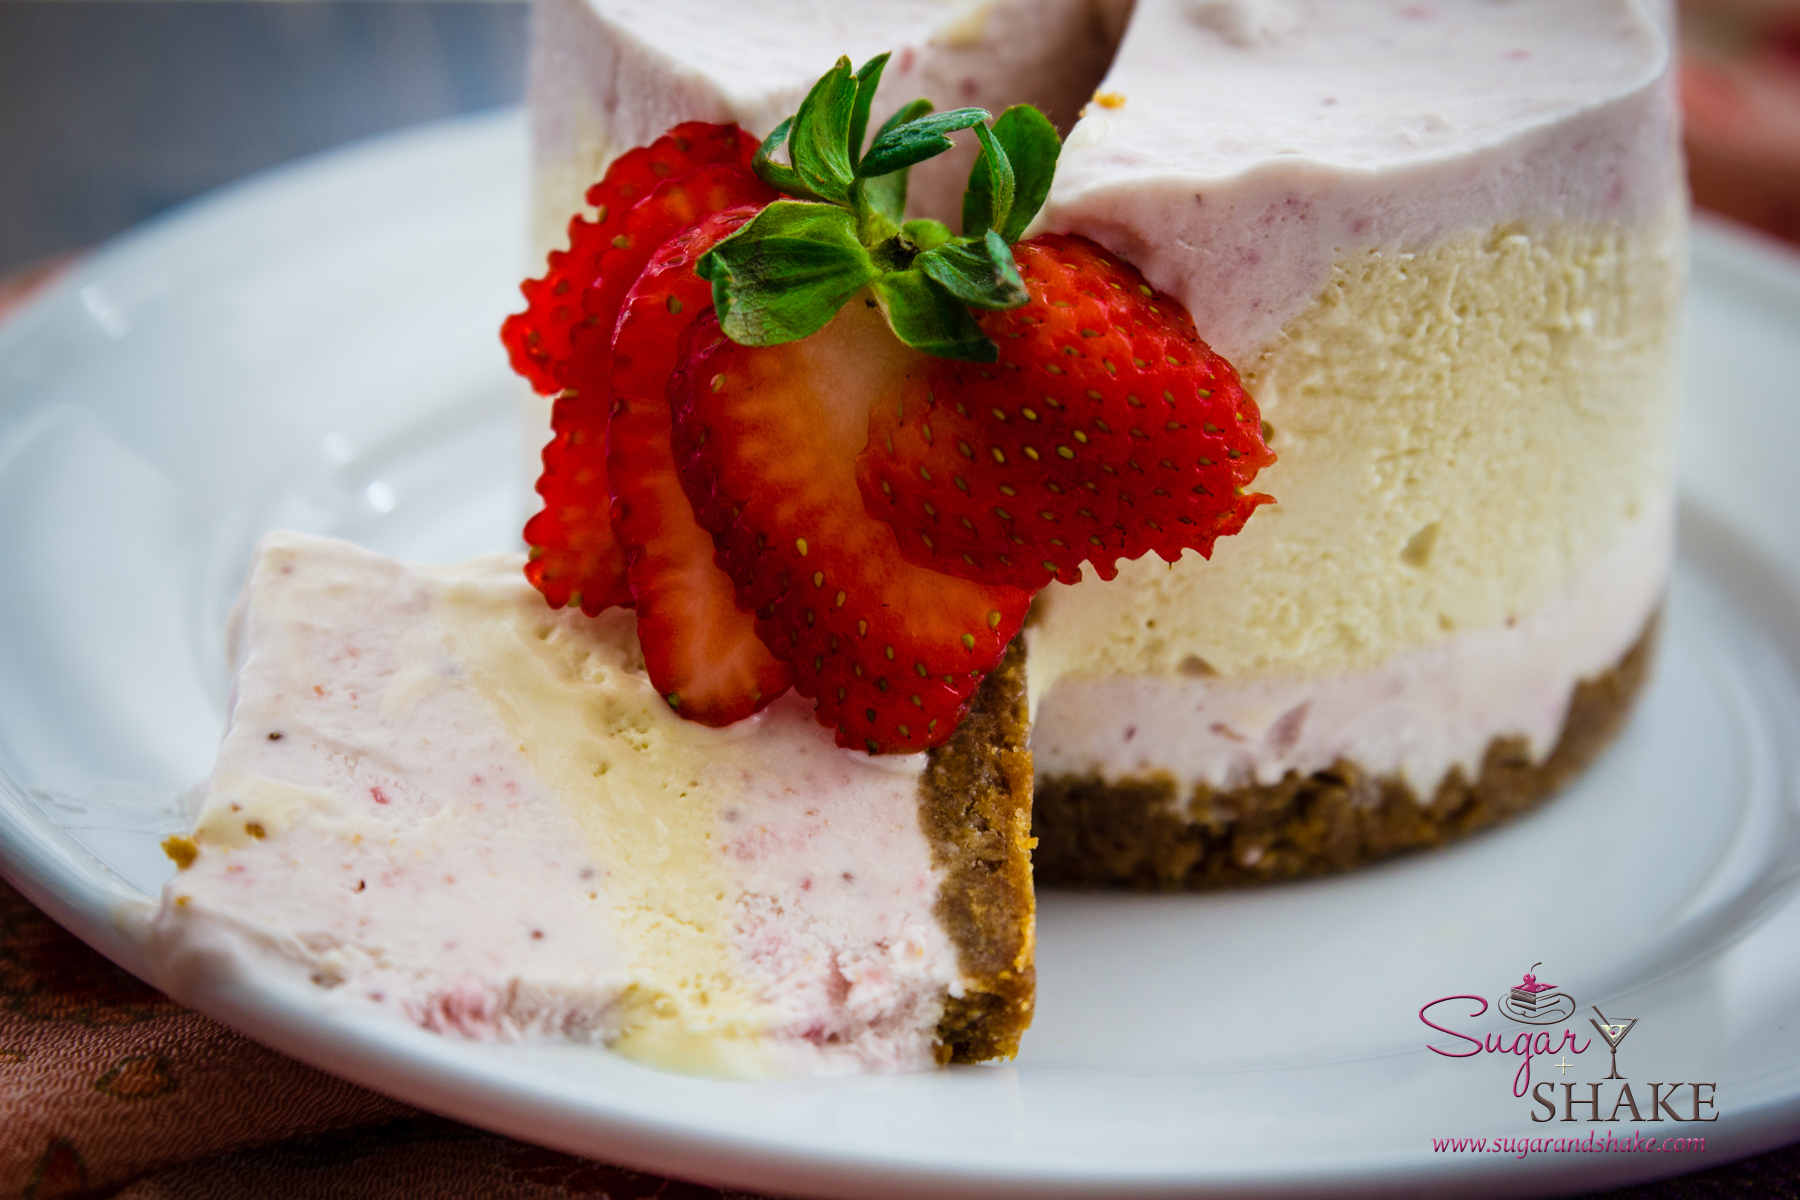 No-baking for a hot weekend: Strawberry & Honey No-Churn Ice Cream Cake. © 2014 Sugar + Shake